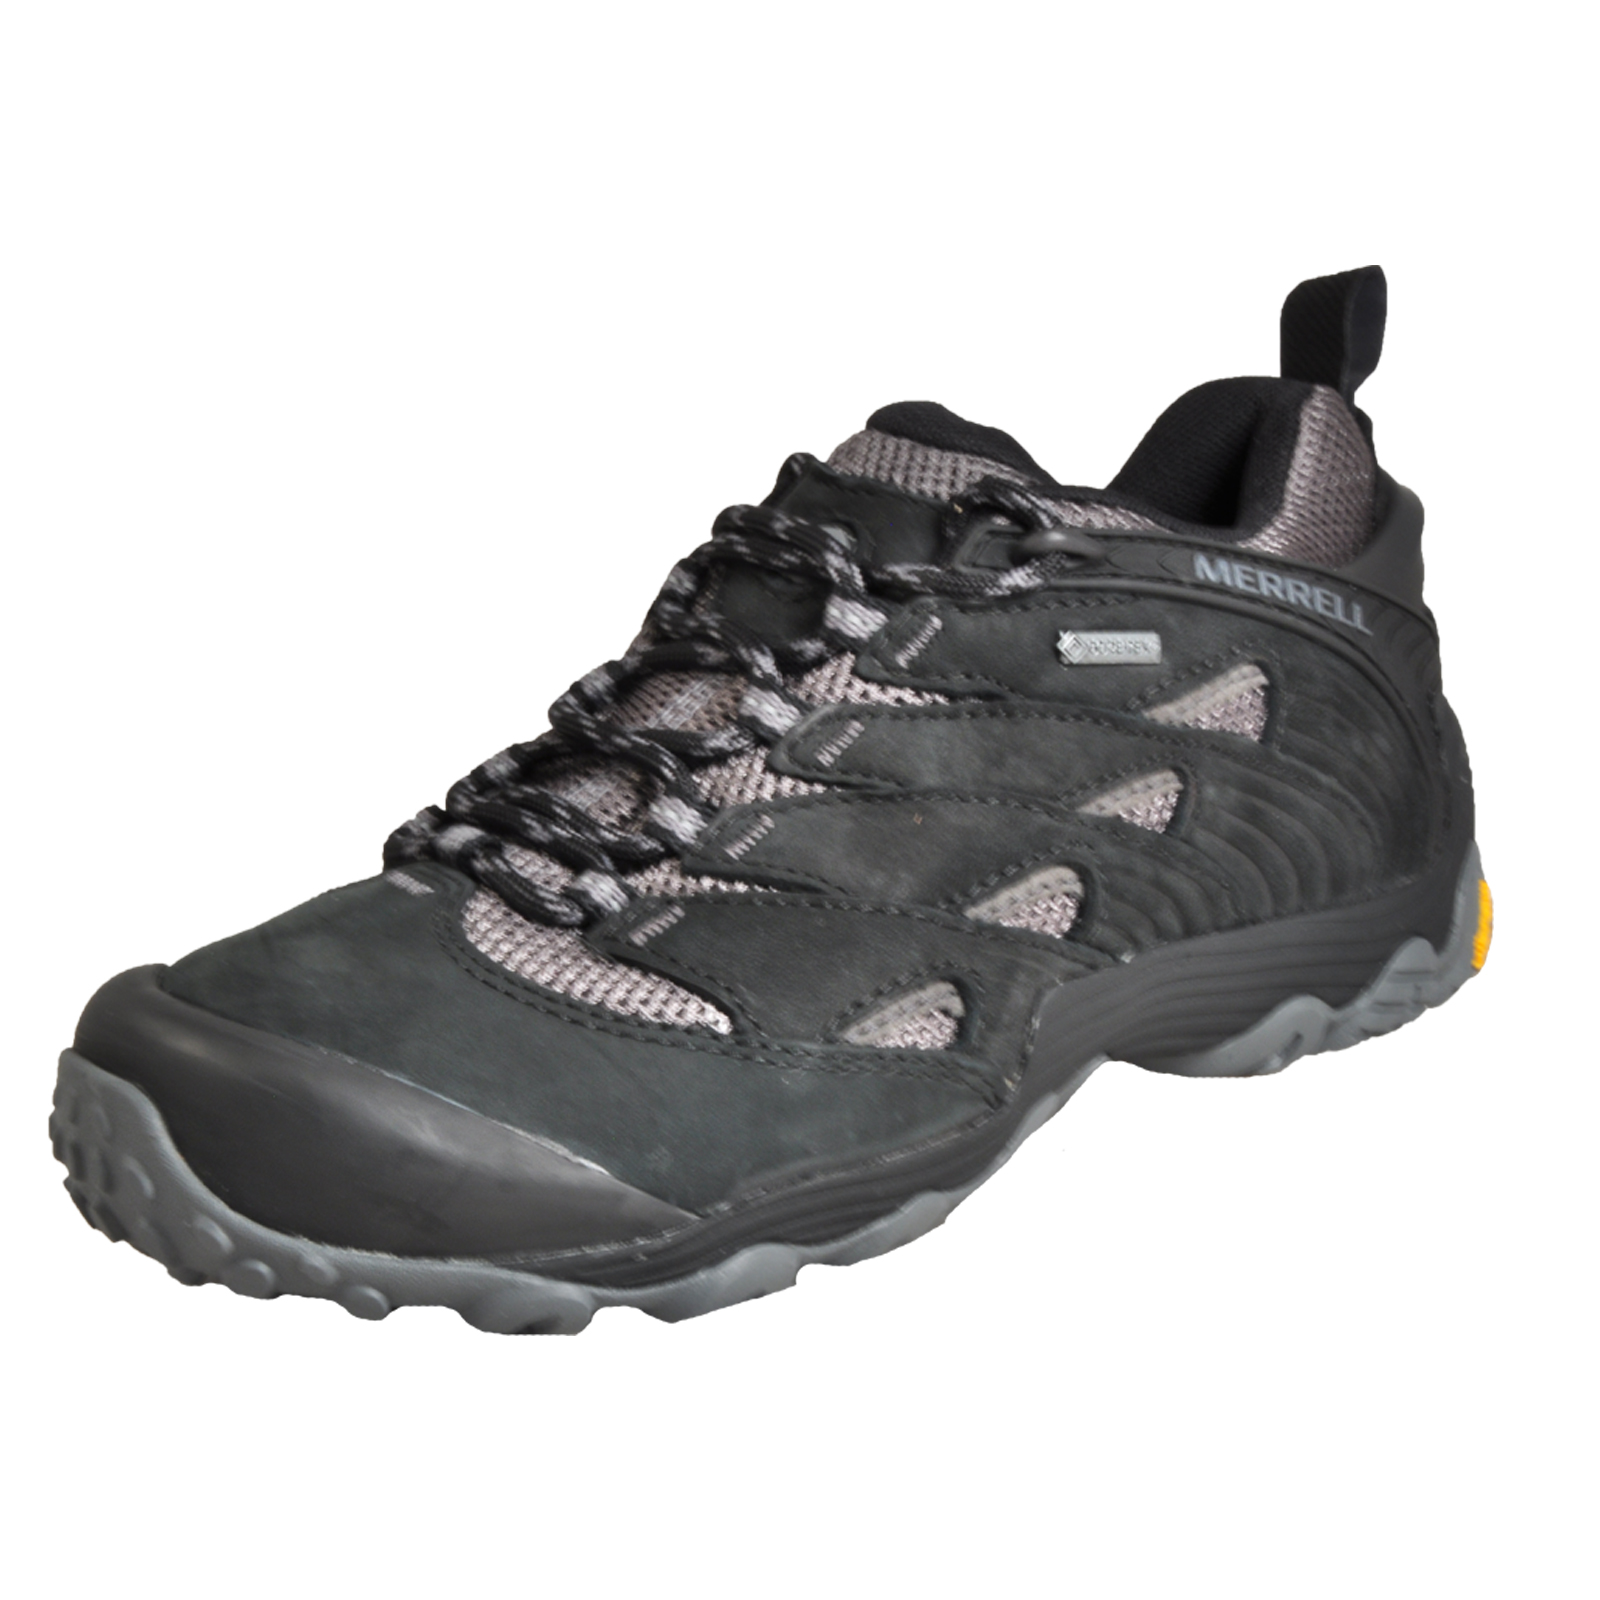 Merrell Cham 7 GTX Gore-Tex Womens - ML172528